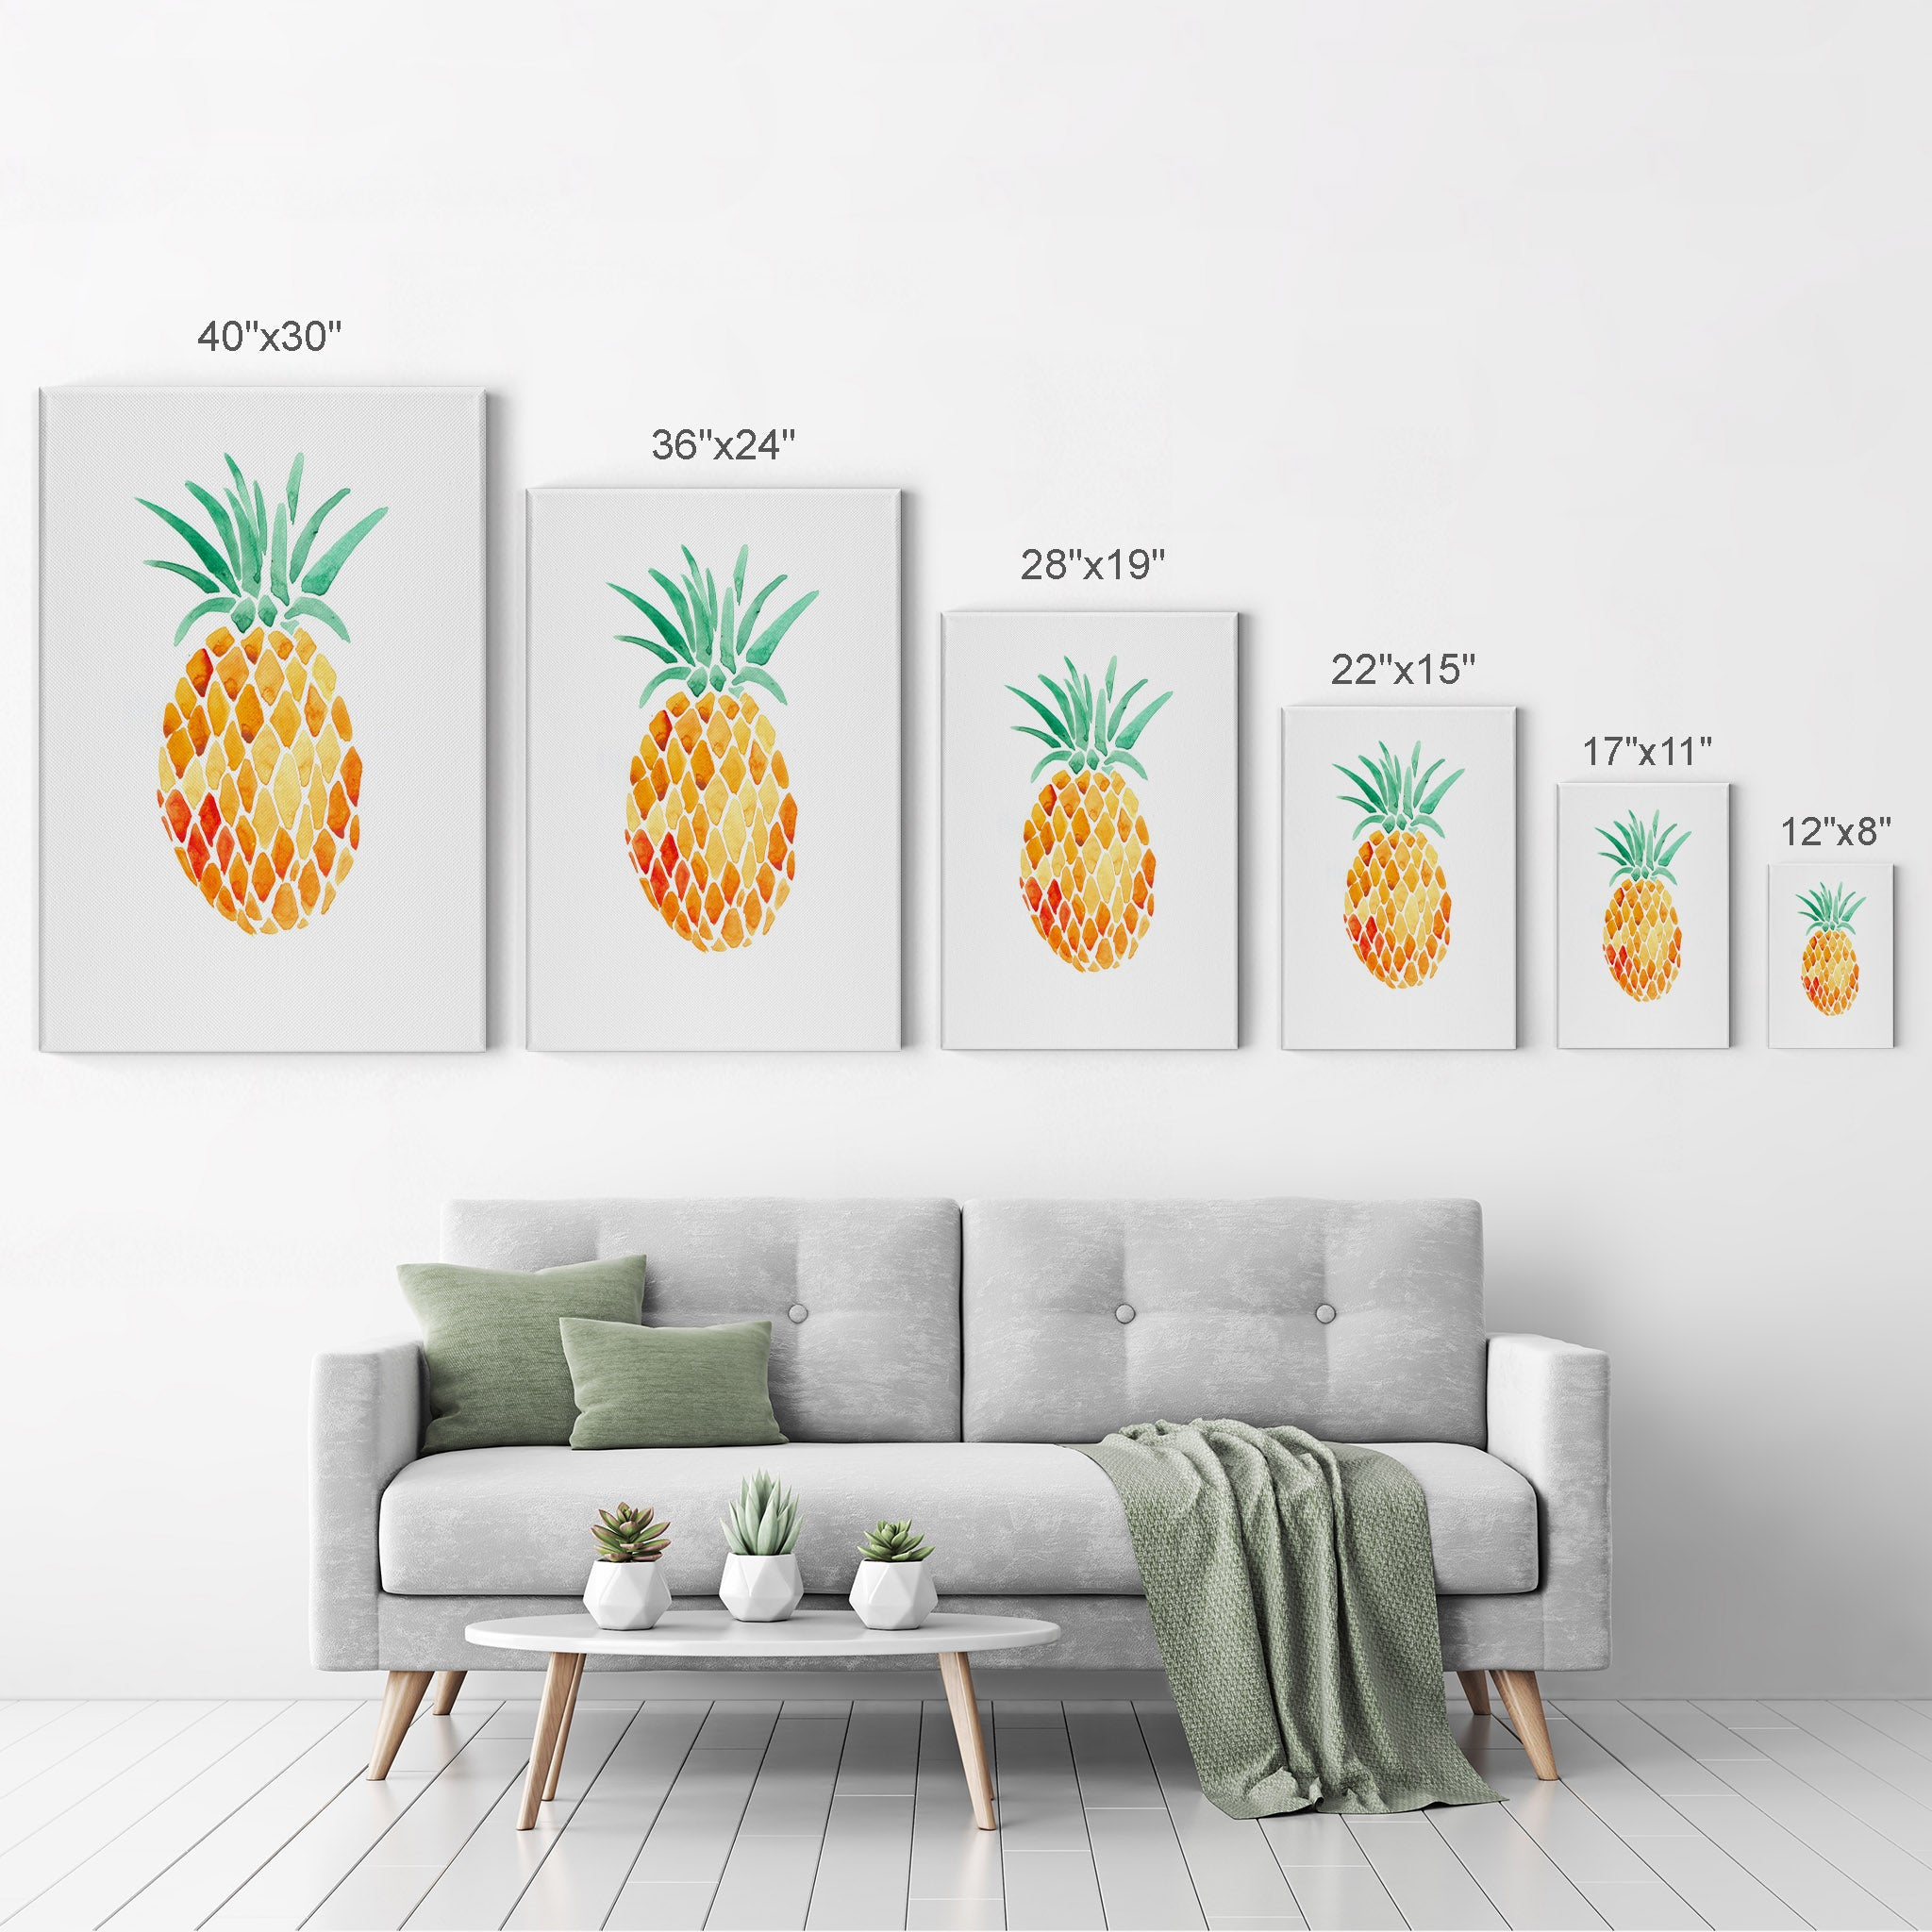 Tropical Pineapple Prints or Canvas Tropical Wood Effect Pineapple Wall Decor Watercolor Pineapple Wall Art Coastal Living Room Set of 3